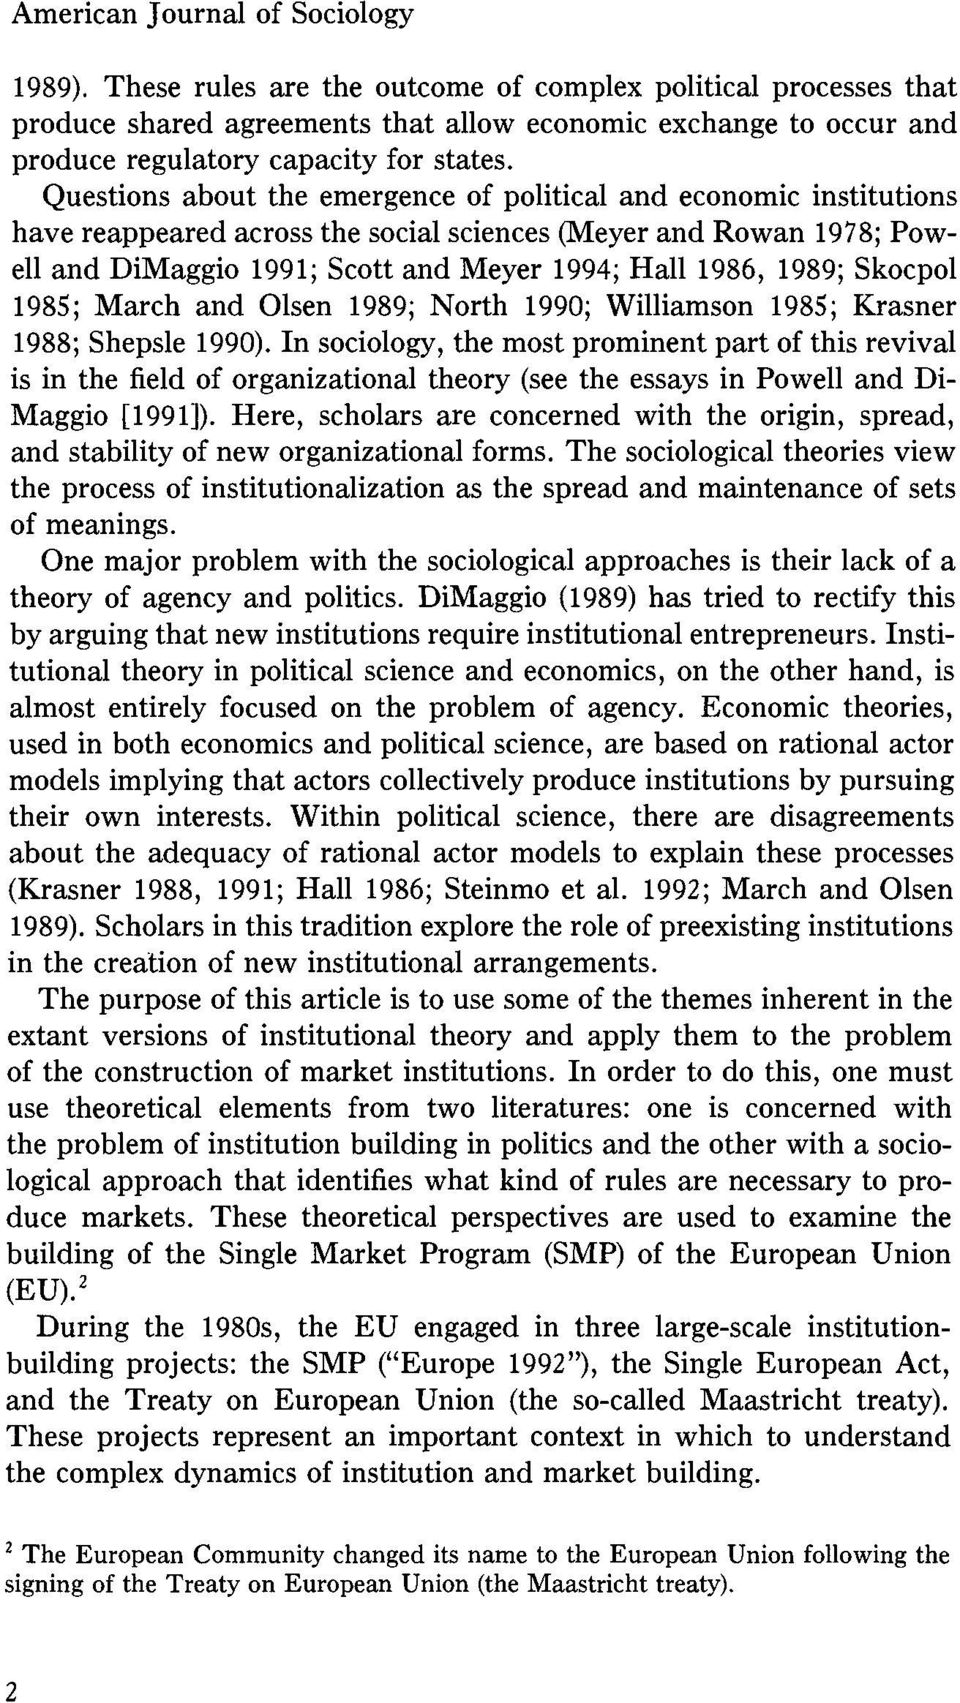 Questions about the emergence of political and economic institutions have reappeared across the social sciences (Meyer and Rowan 1978; Powell and DiMaggio 1991; Scott and Meyer 1994; Hall 1986, 1989;